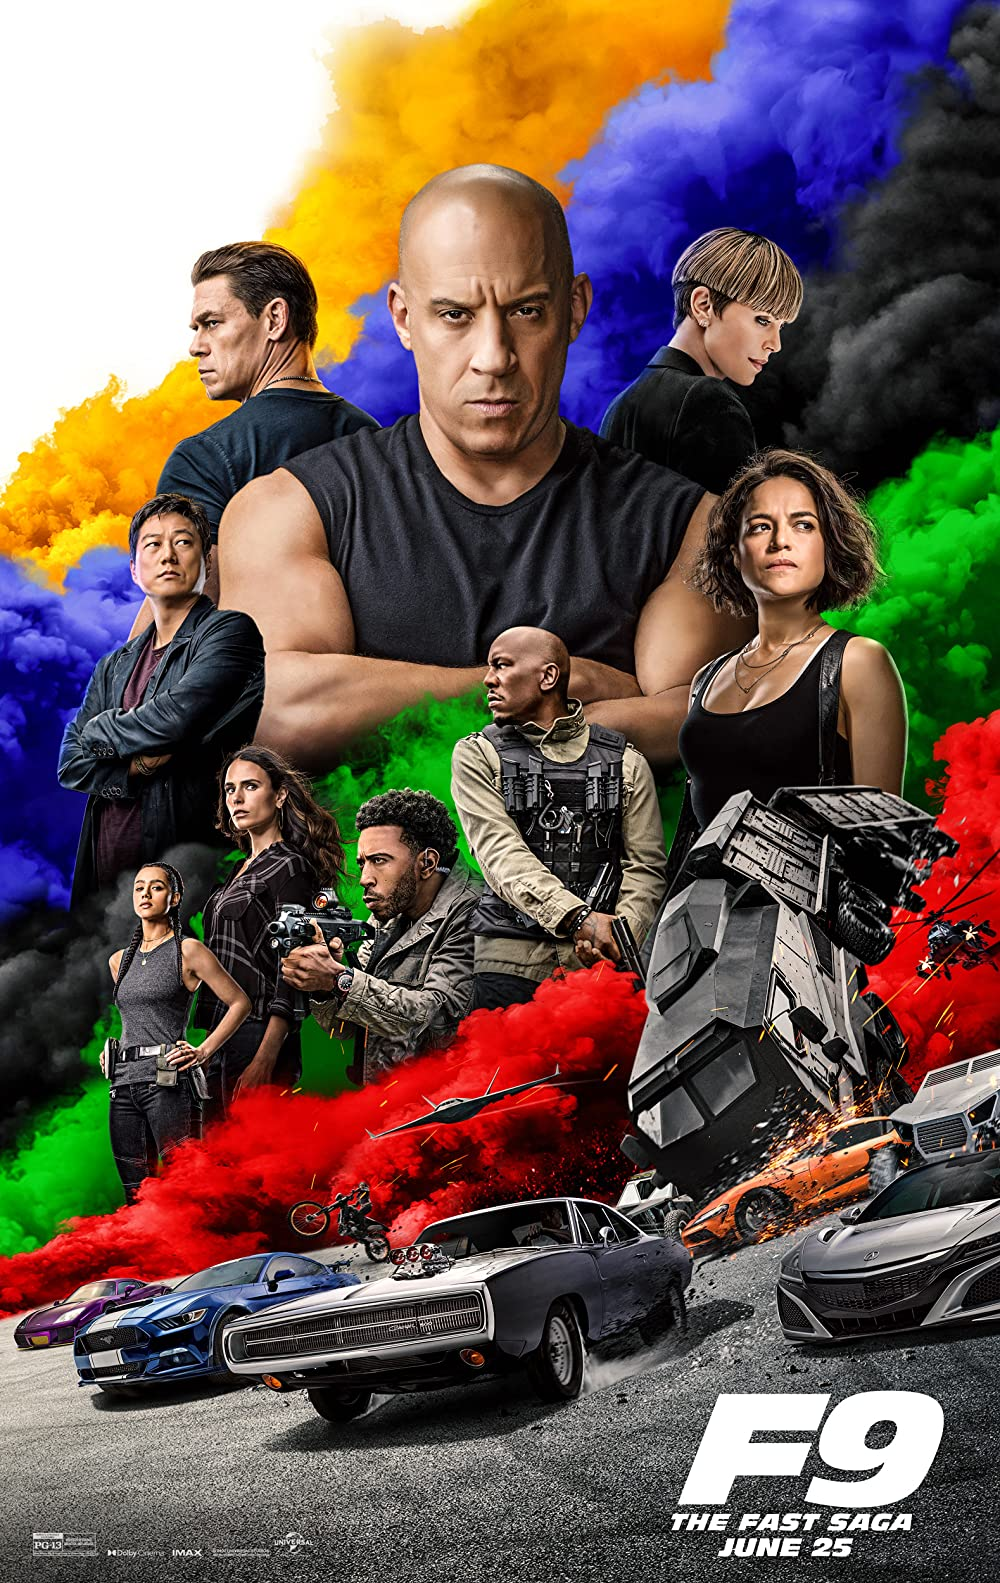 Fast & Furious 9 2021 Hindi Dubbed Official Trailer 2 1080p HDRip 82MB Download